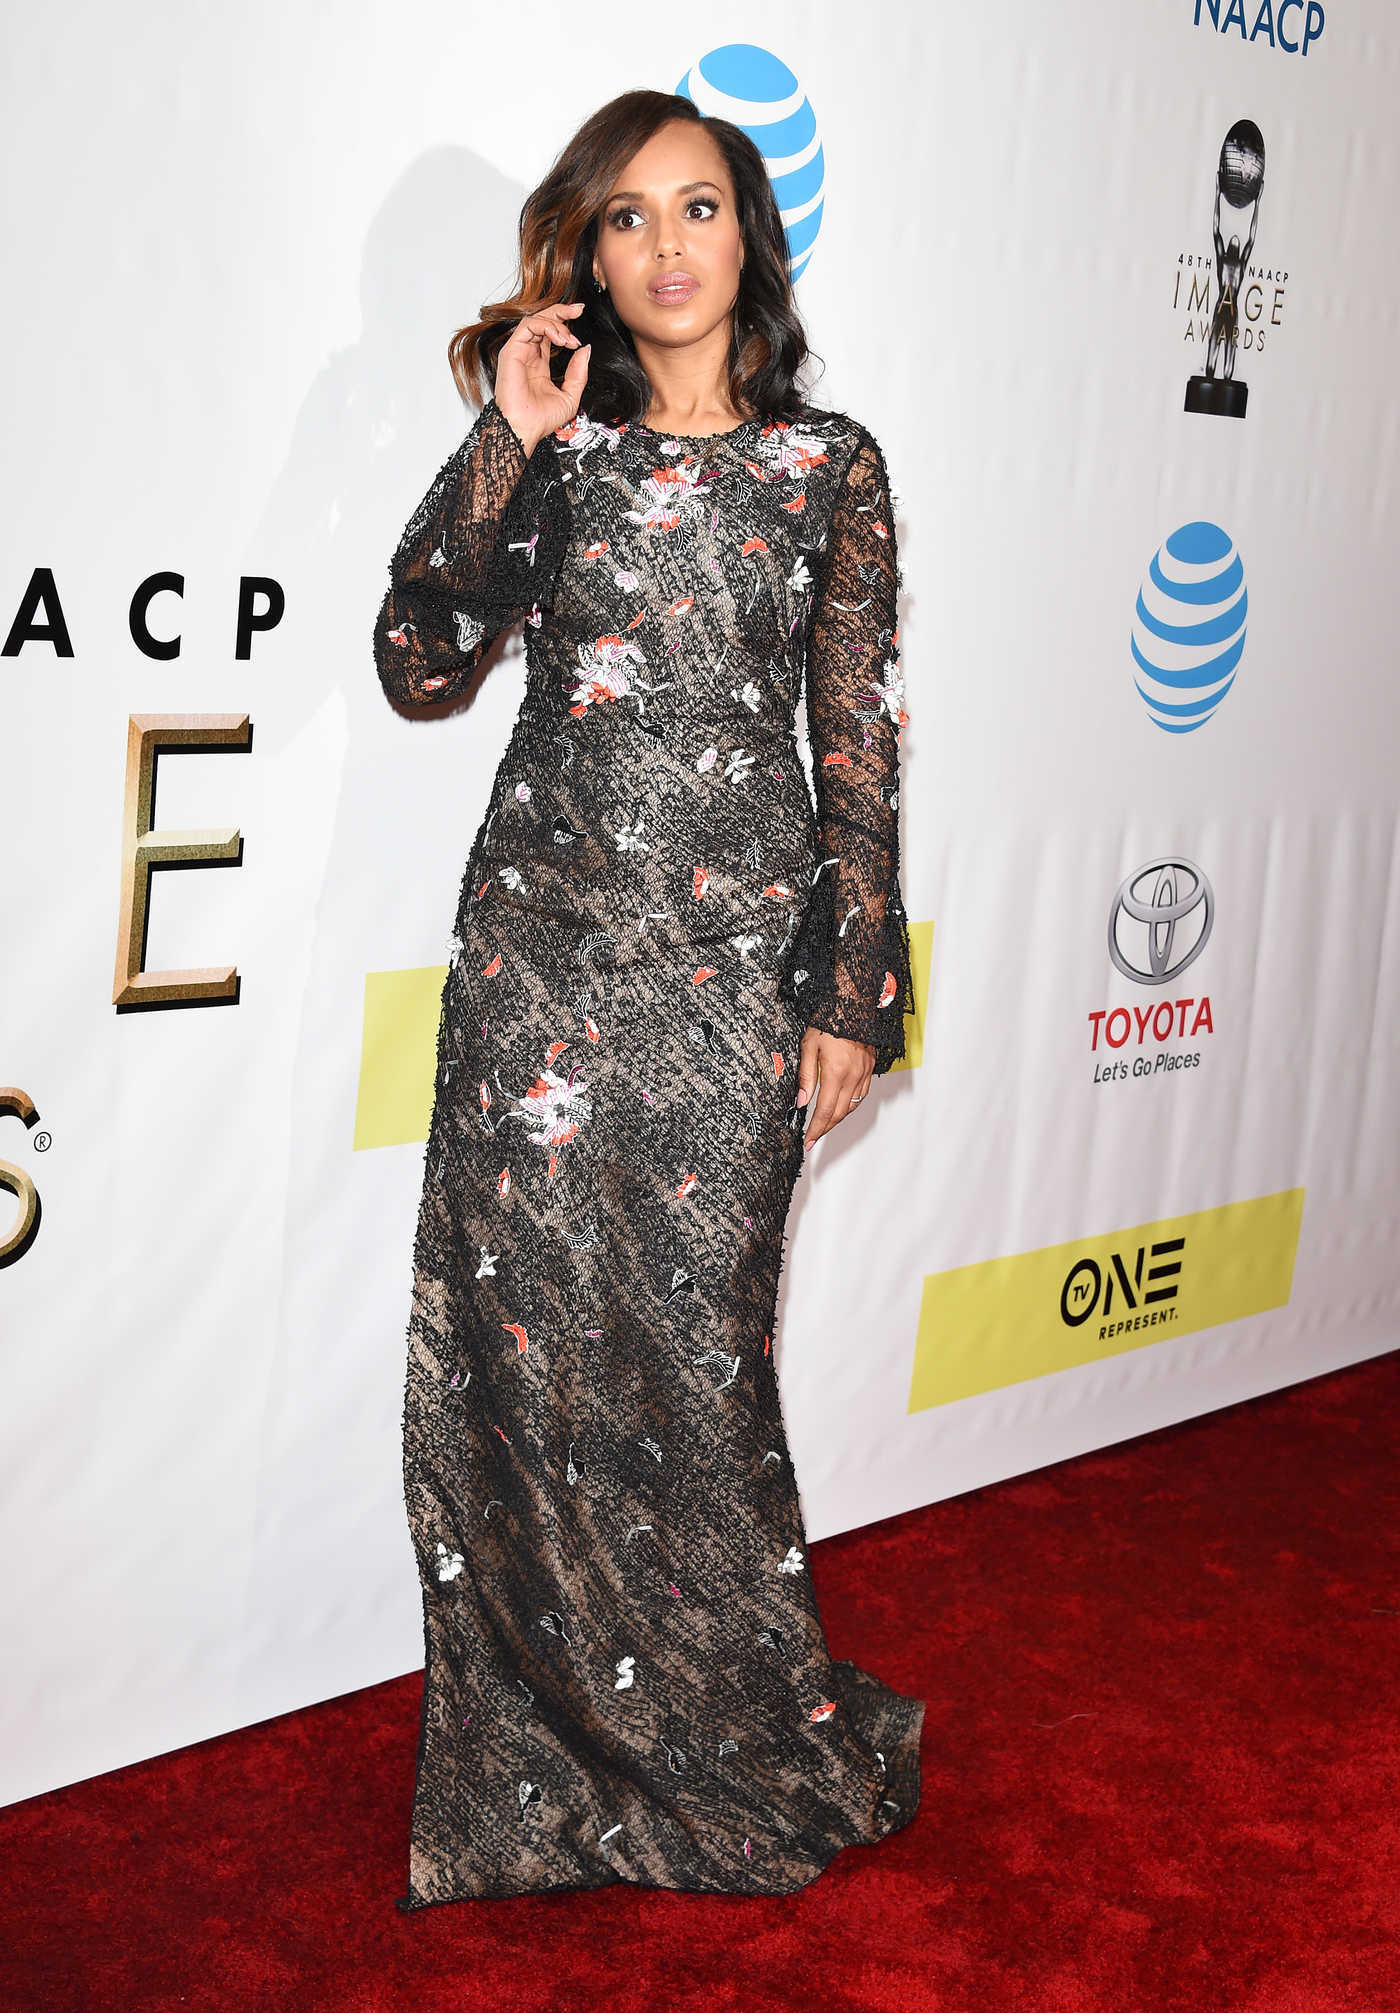 Kerry Washington at the 48th NAACP Image Awards in Pasadena 02/11/2017